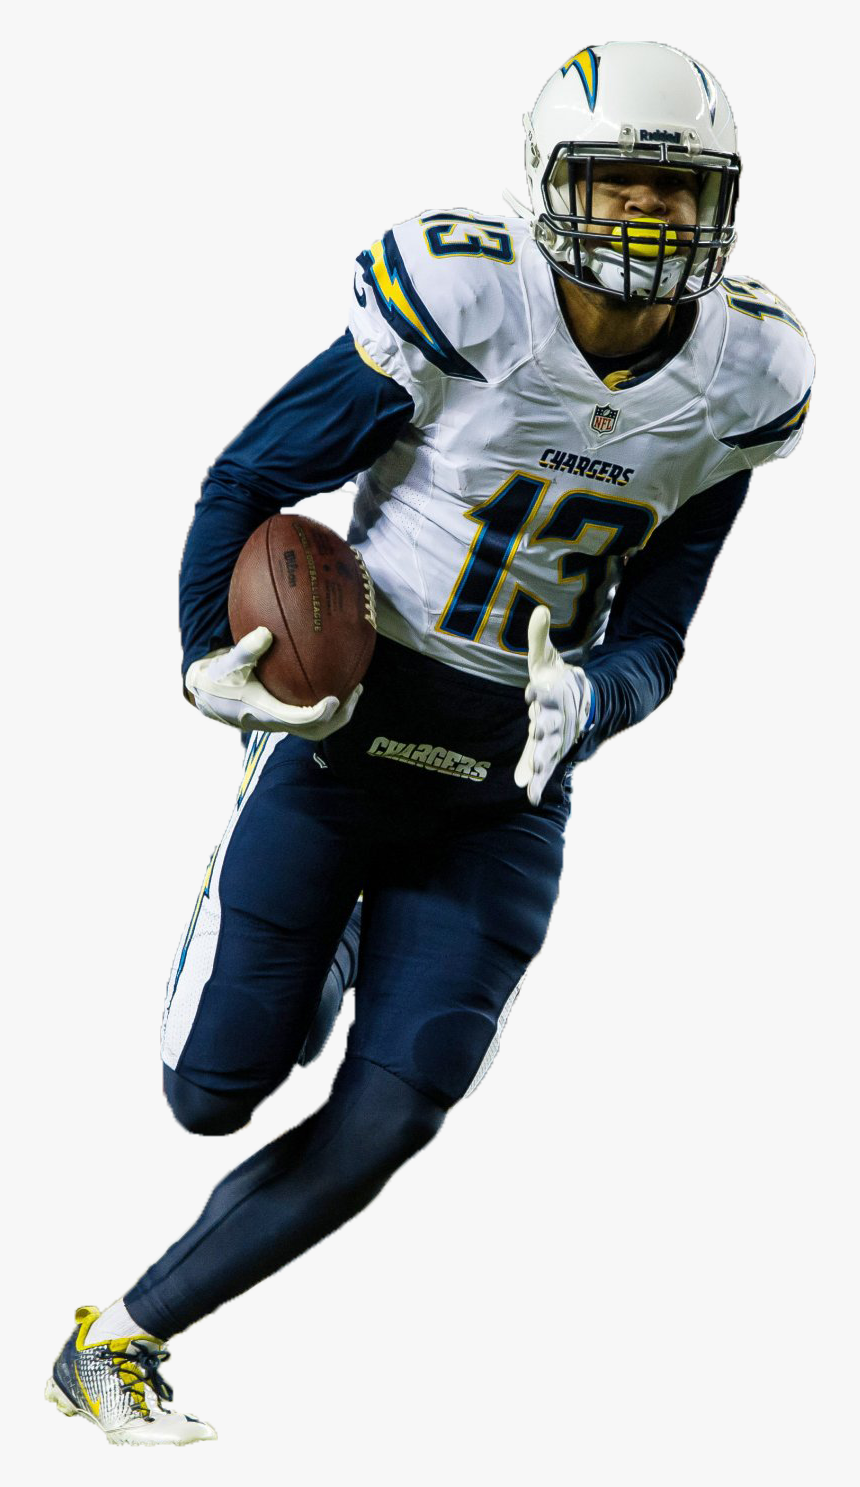 American Football Png - American Football Player Png, Transparent Png, Free Download